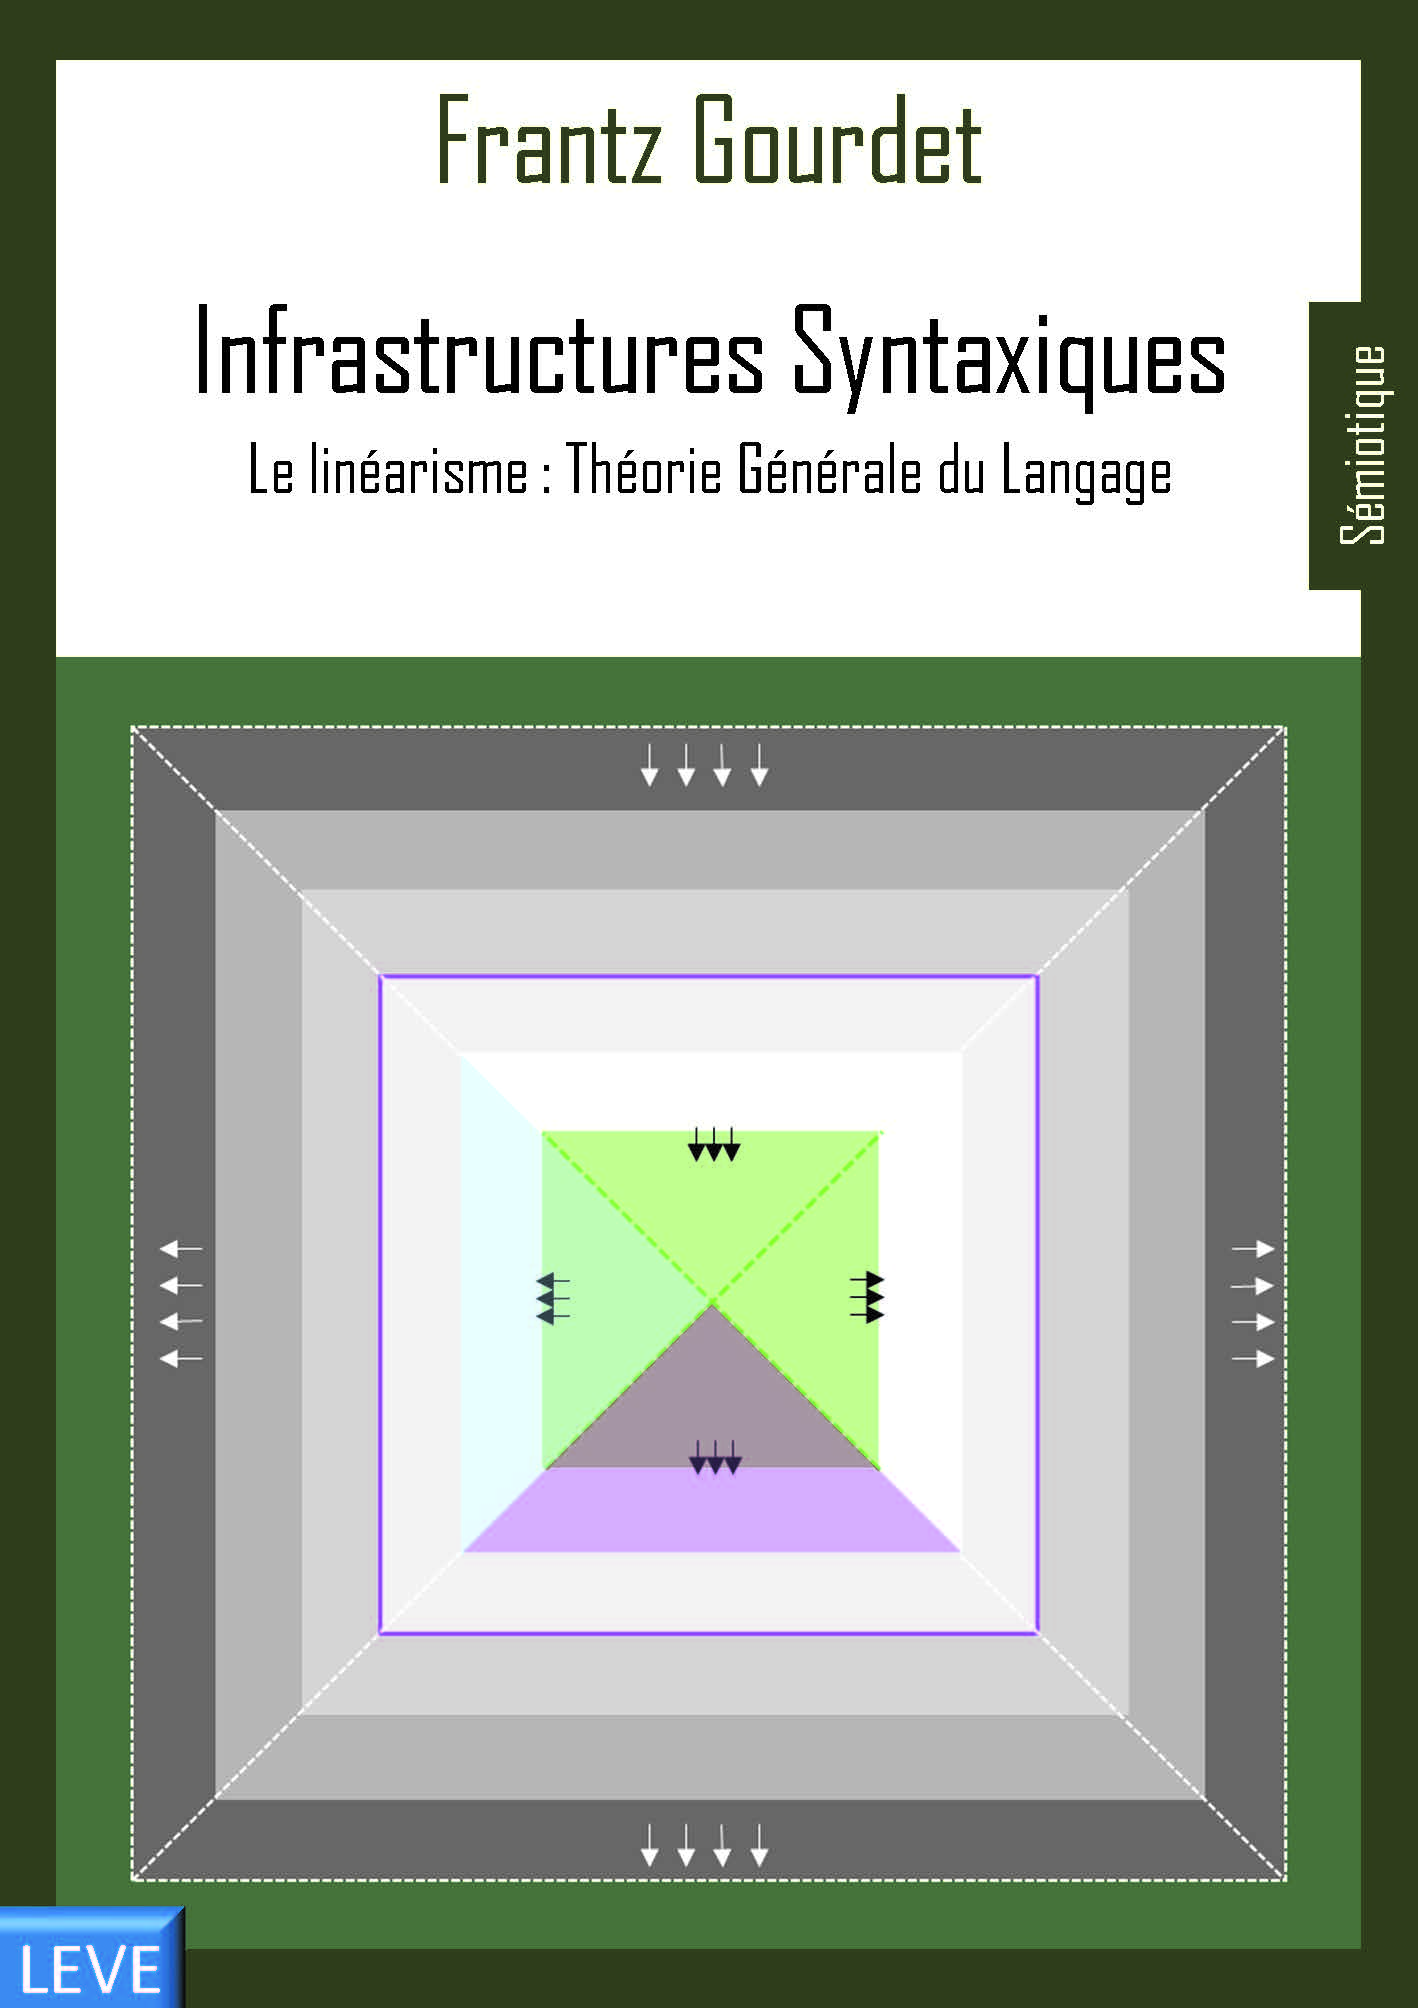 Infrastructures Syntaxiques